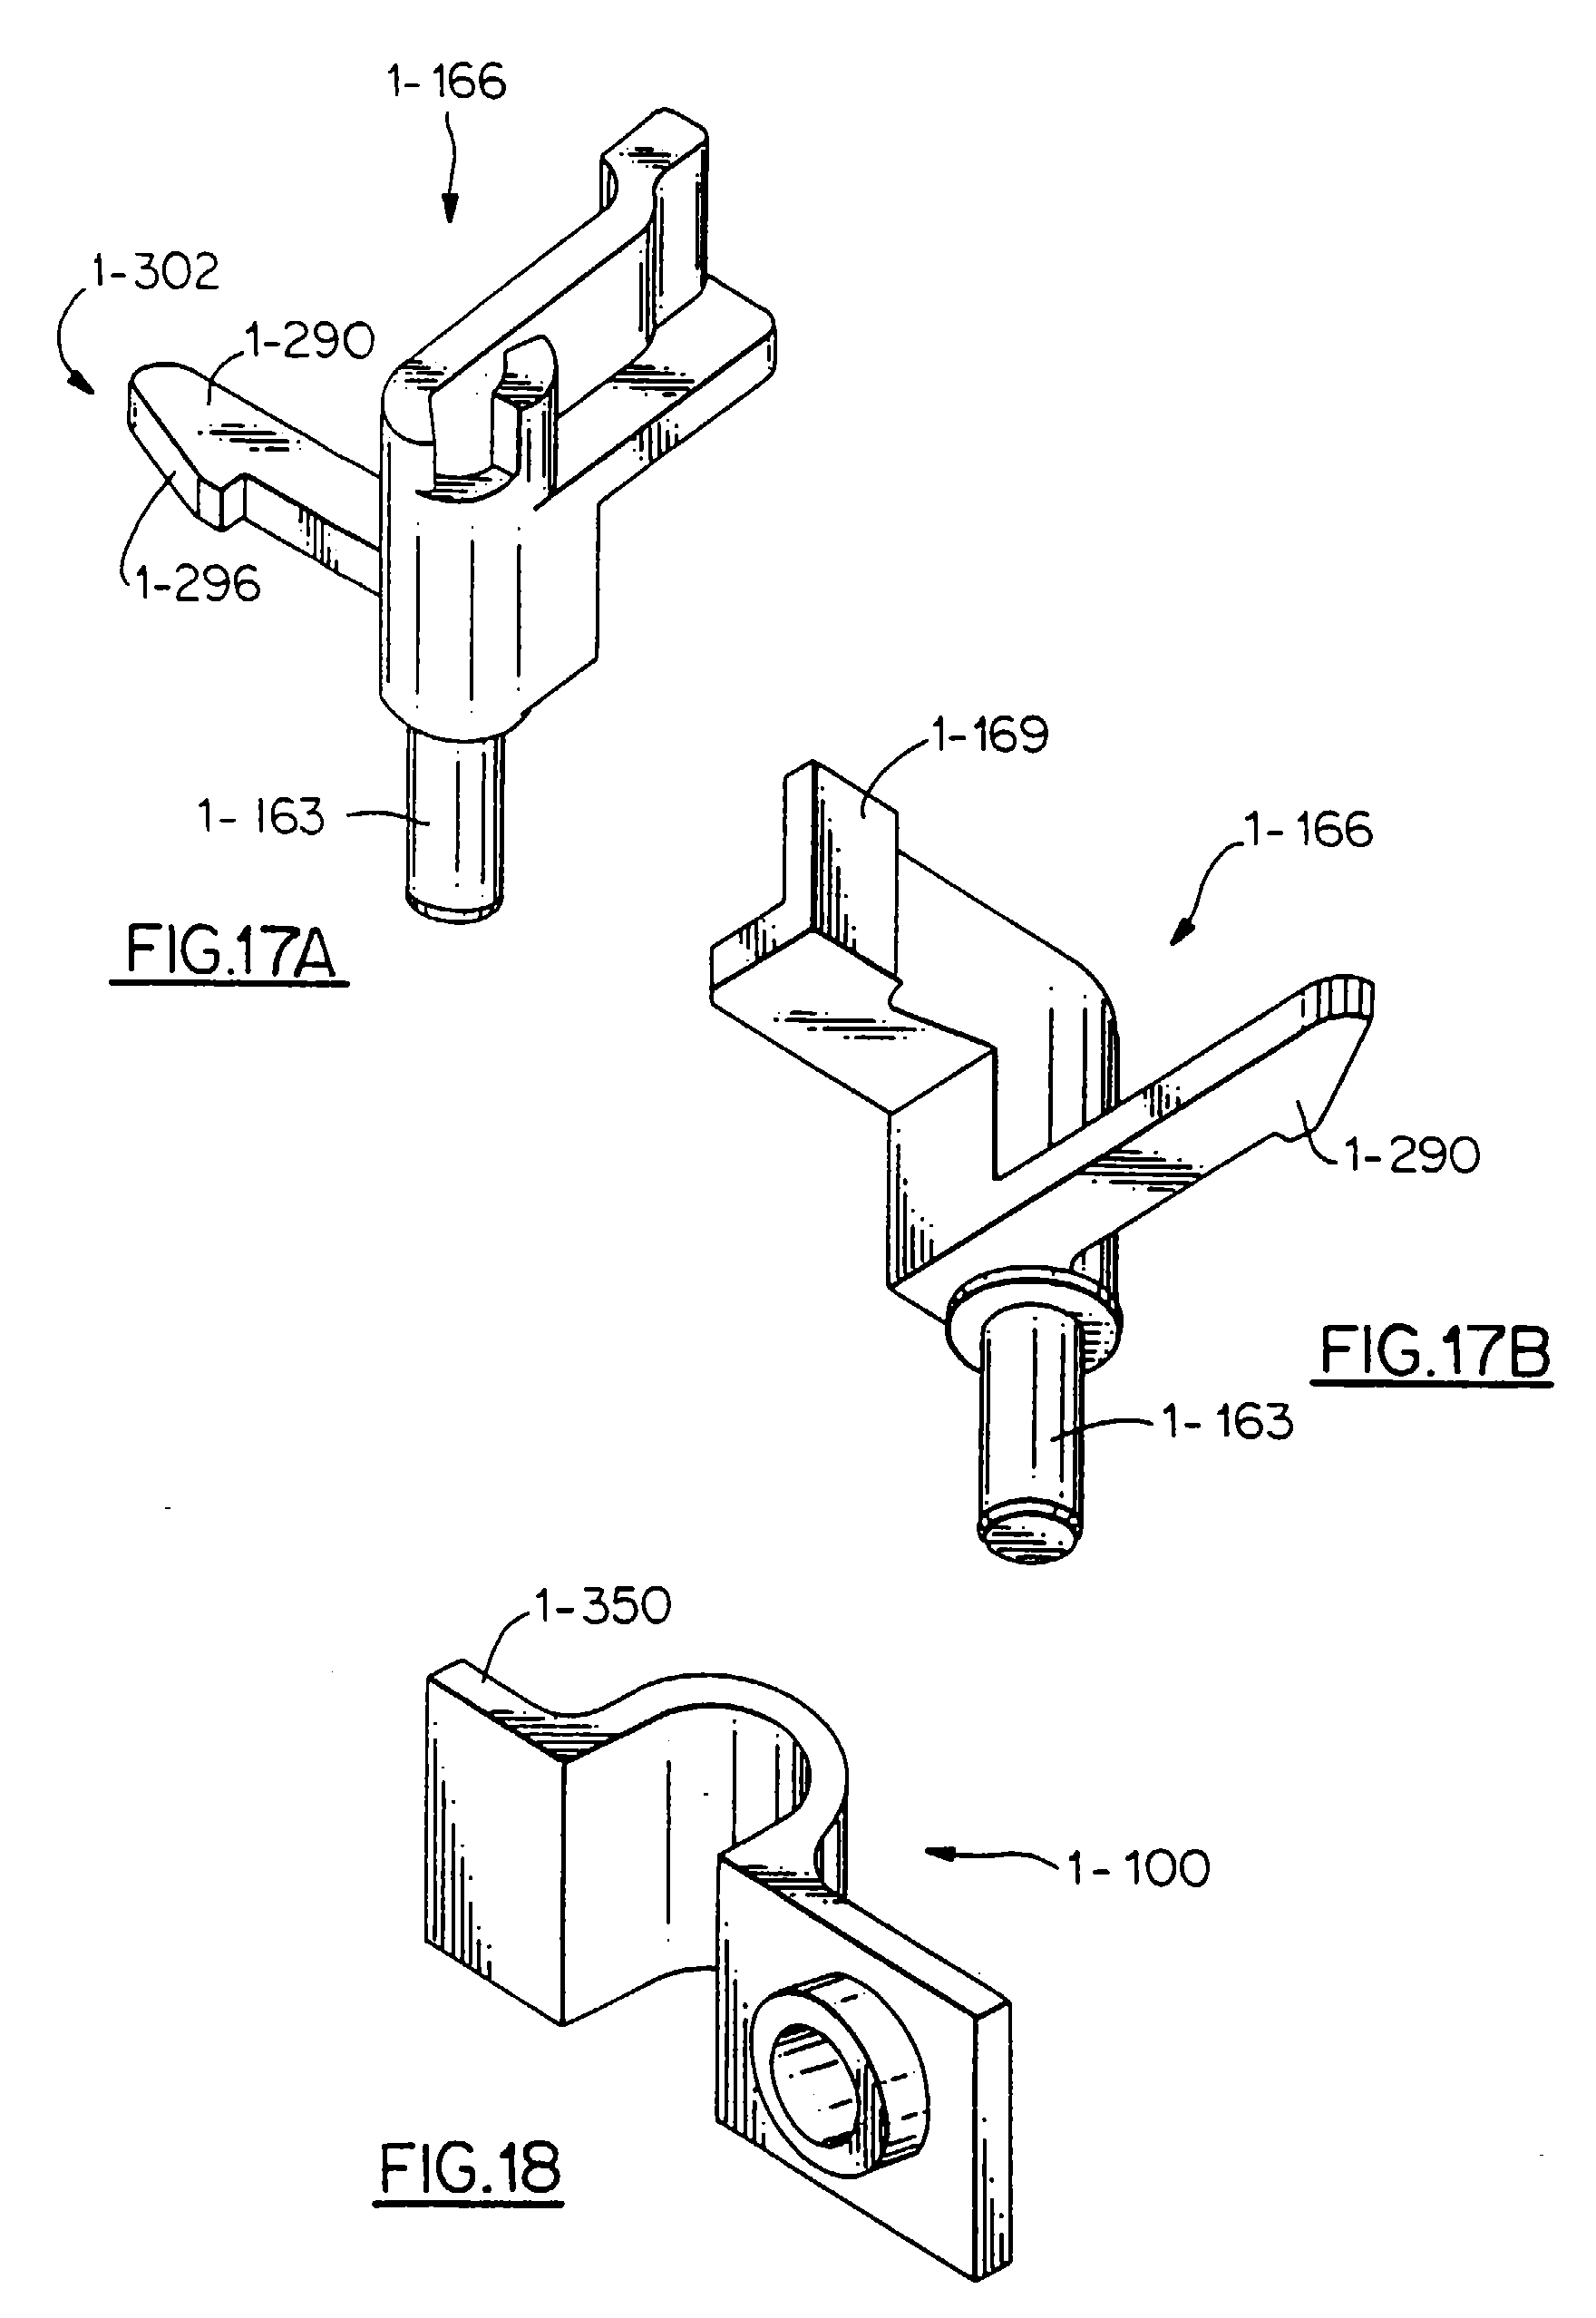 Patent Ep0829861a2 Servo Control System For Information